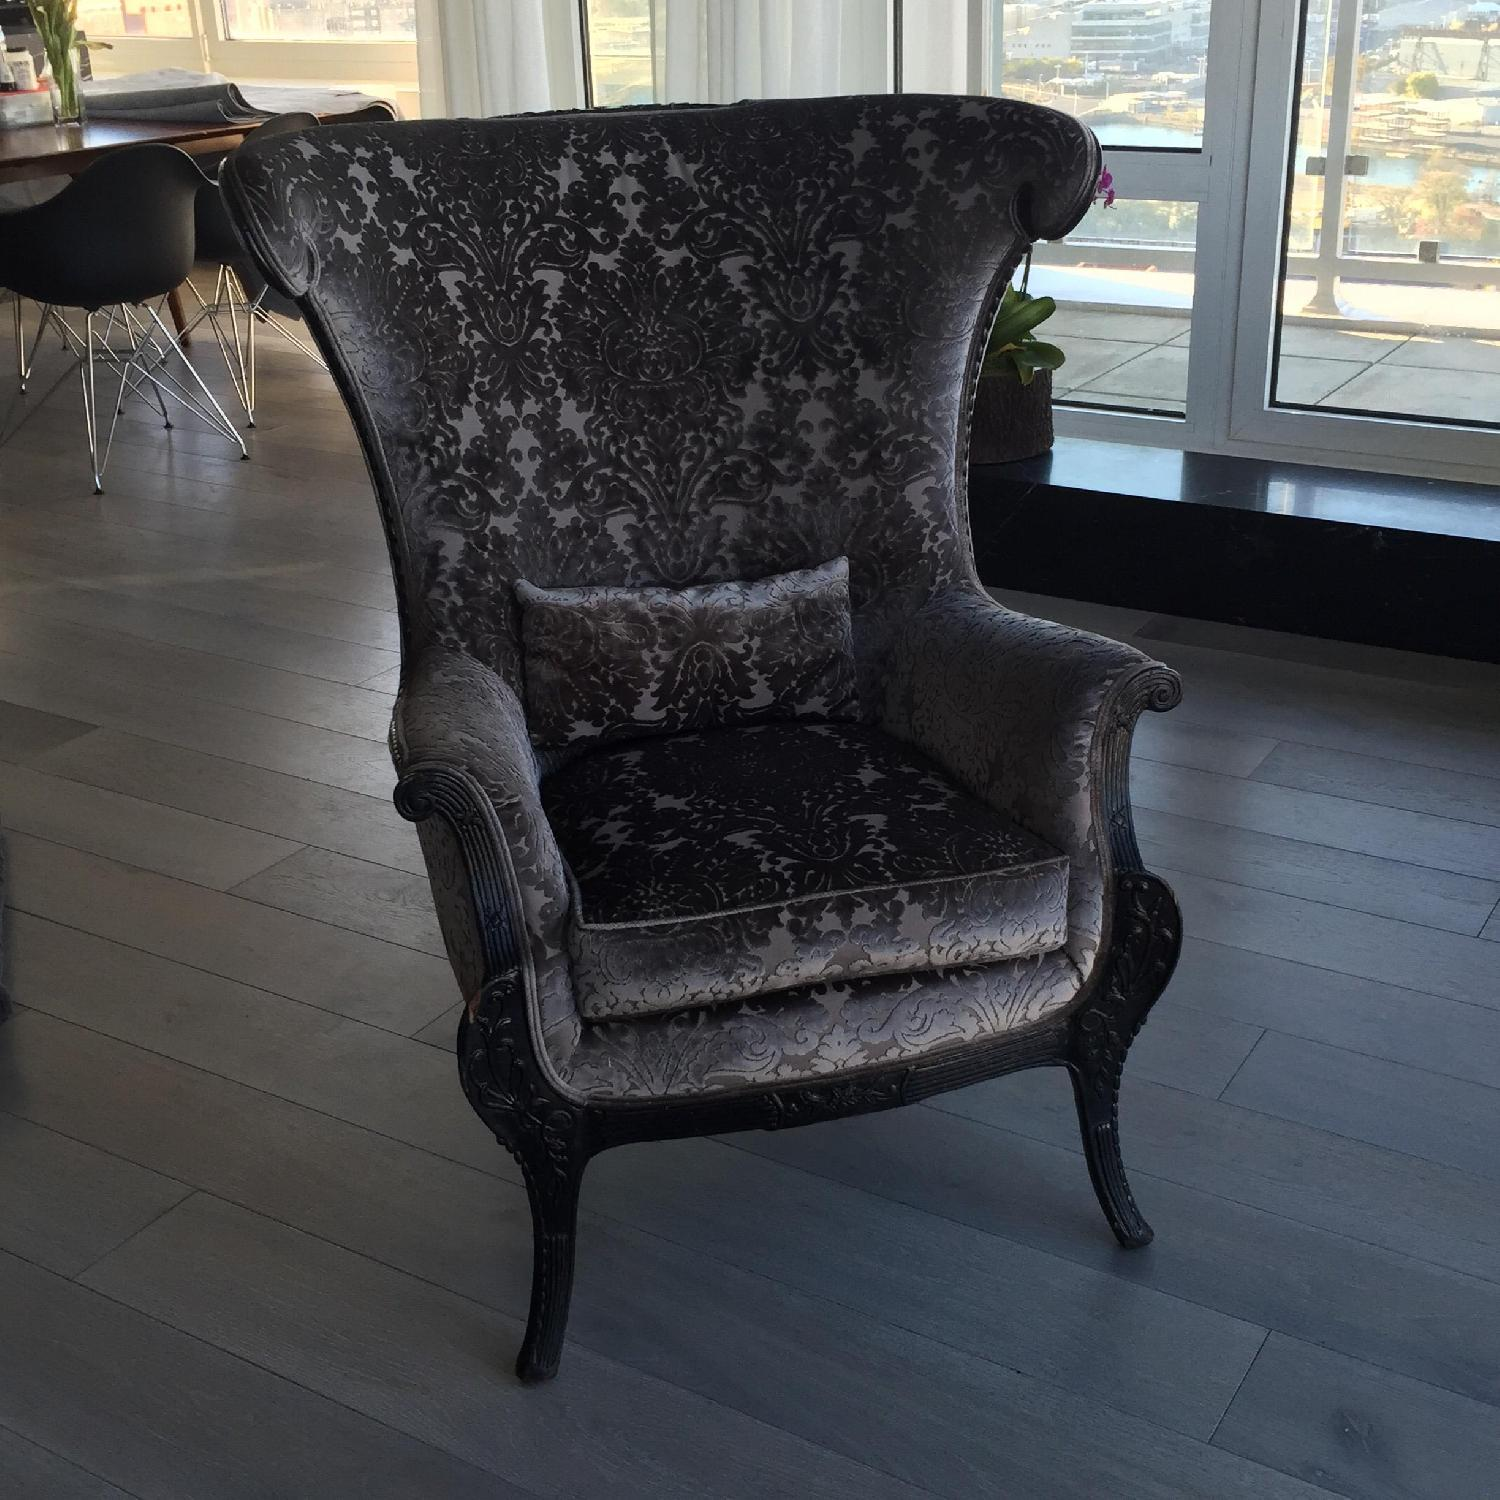 Antique High-Backed Reupholstered Gray Fabric Armchair - image-2